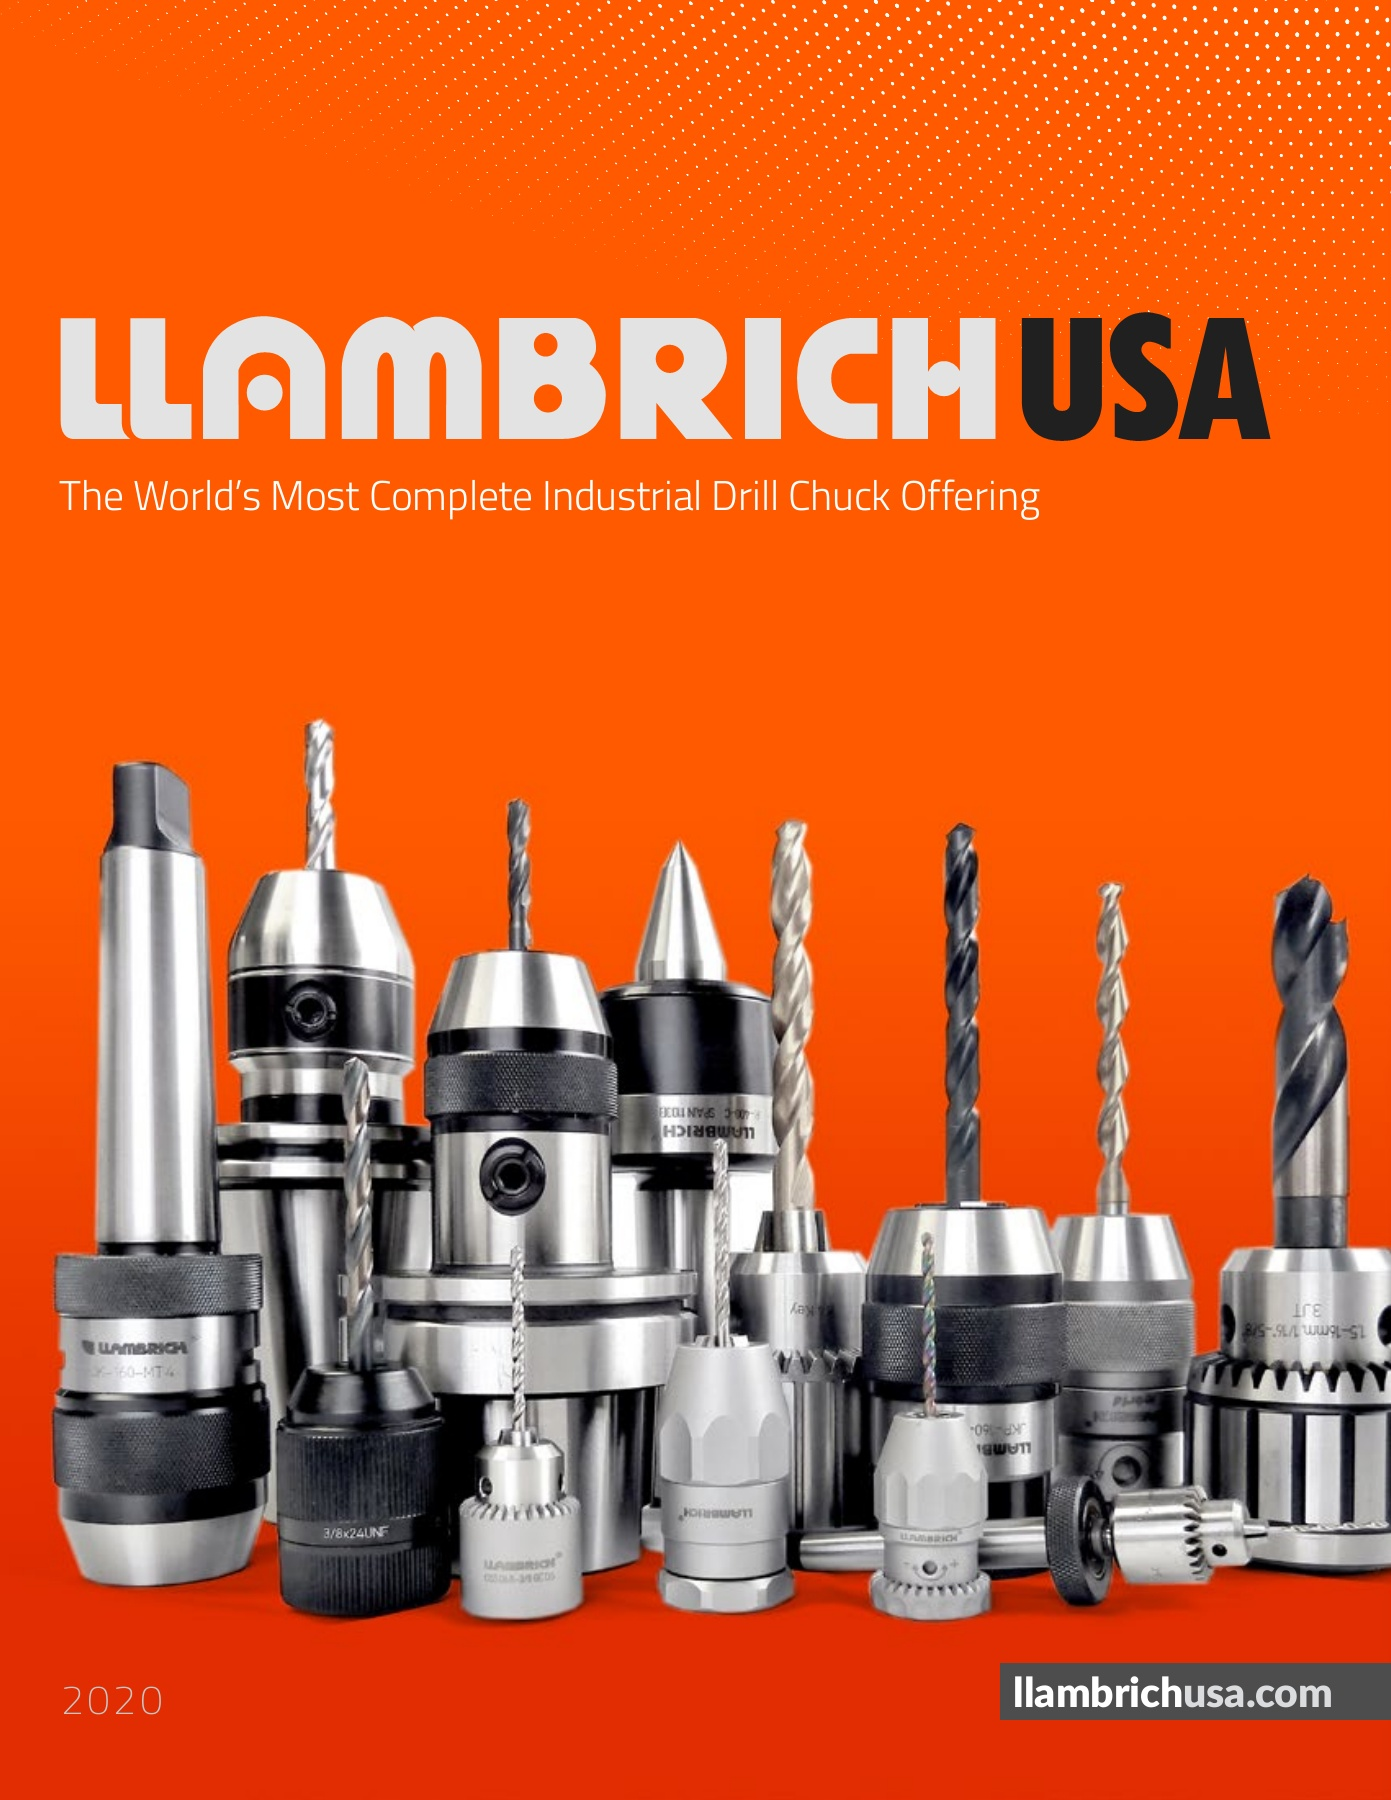 Llambrich E-J6//4 Arbor 4MT to 6JT Hardened Steel